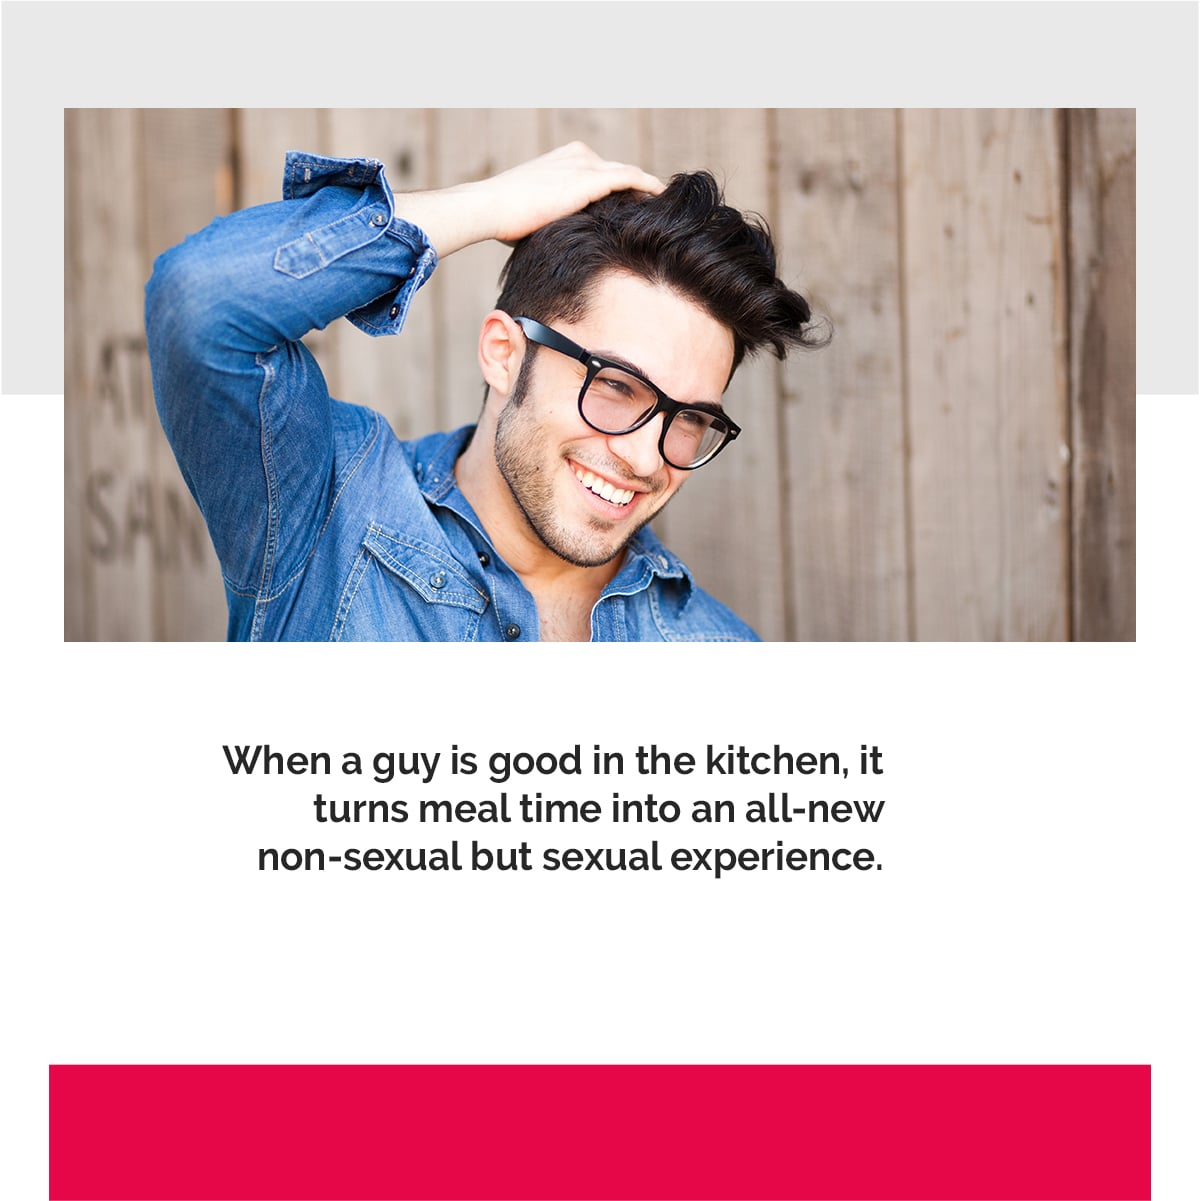 When a guy knows how to cook